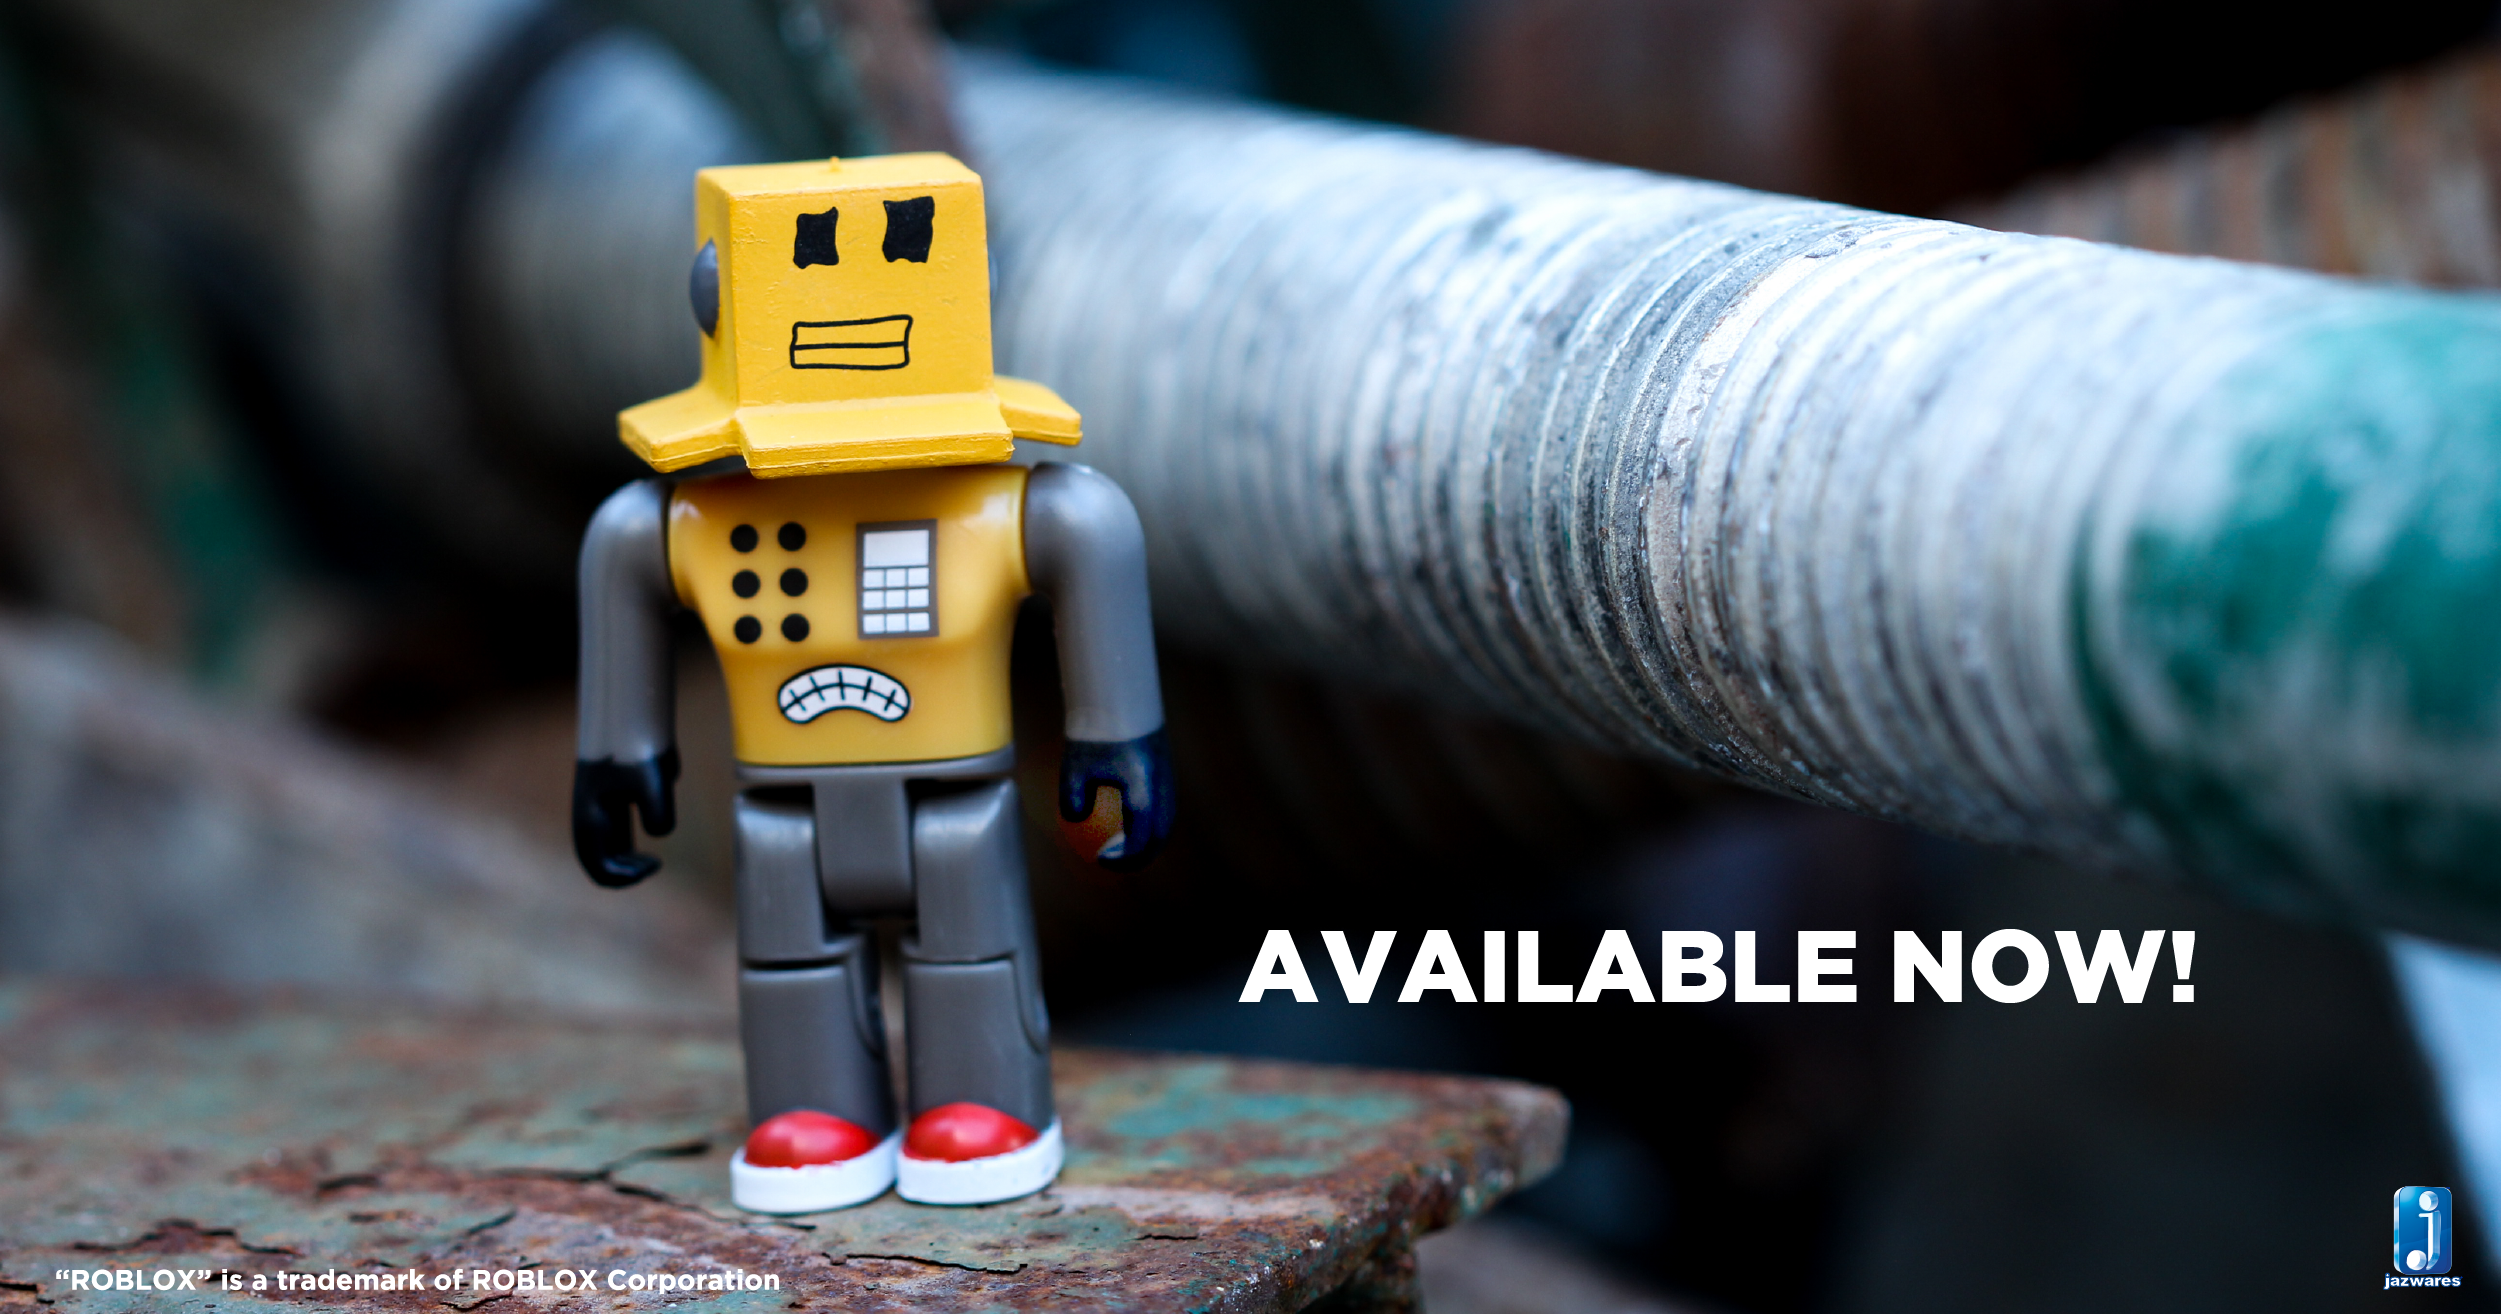 Roblox Robots Our Roblox Mr Robot Figure Is One Of The Many In Stores And Online Now In Our Series 1 Roblox Line Http Roblox Jazwares Roblox Usb Flash Drive Flash Drive